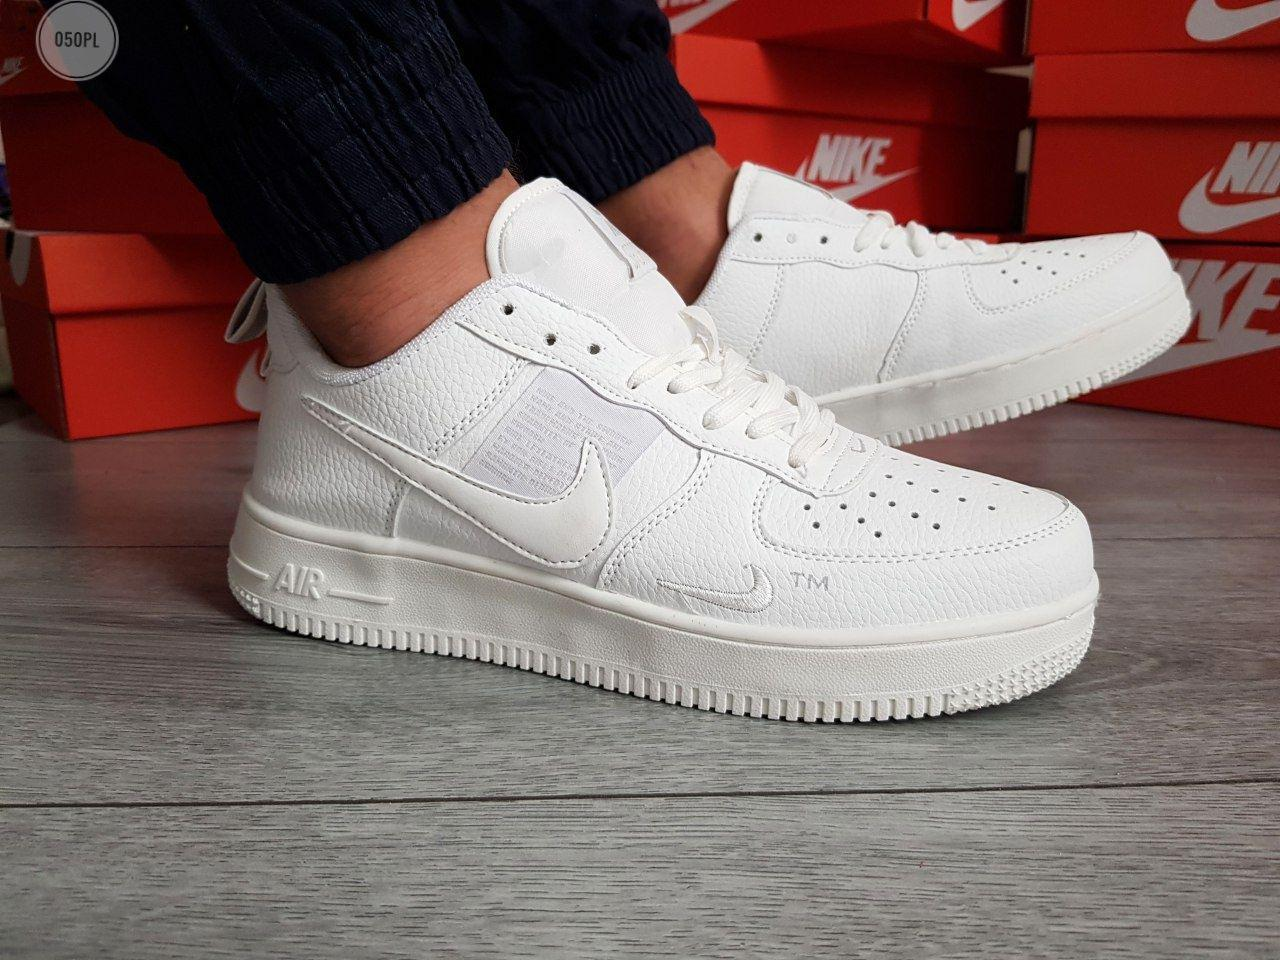 Мужские кроссовки Nike Air Force 19 Low White